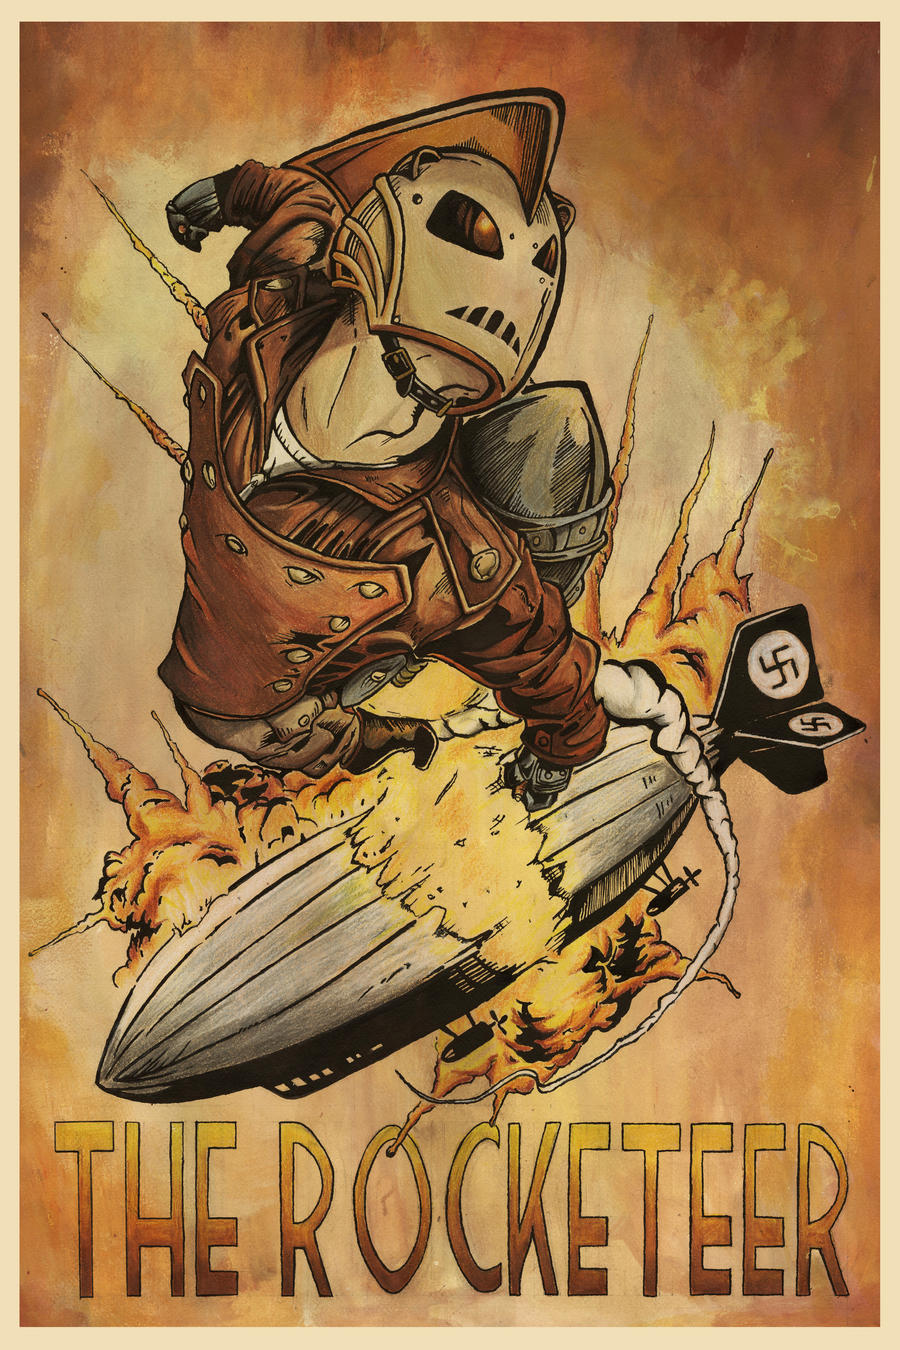 The Rocketeer By Jss743 On Deviantart